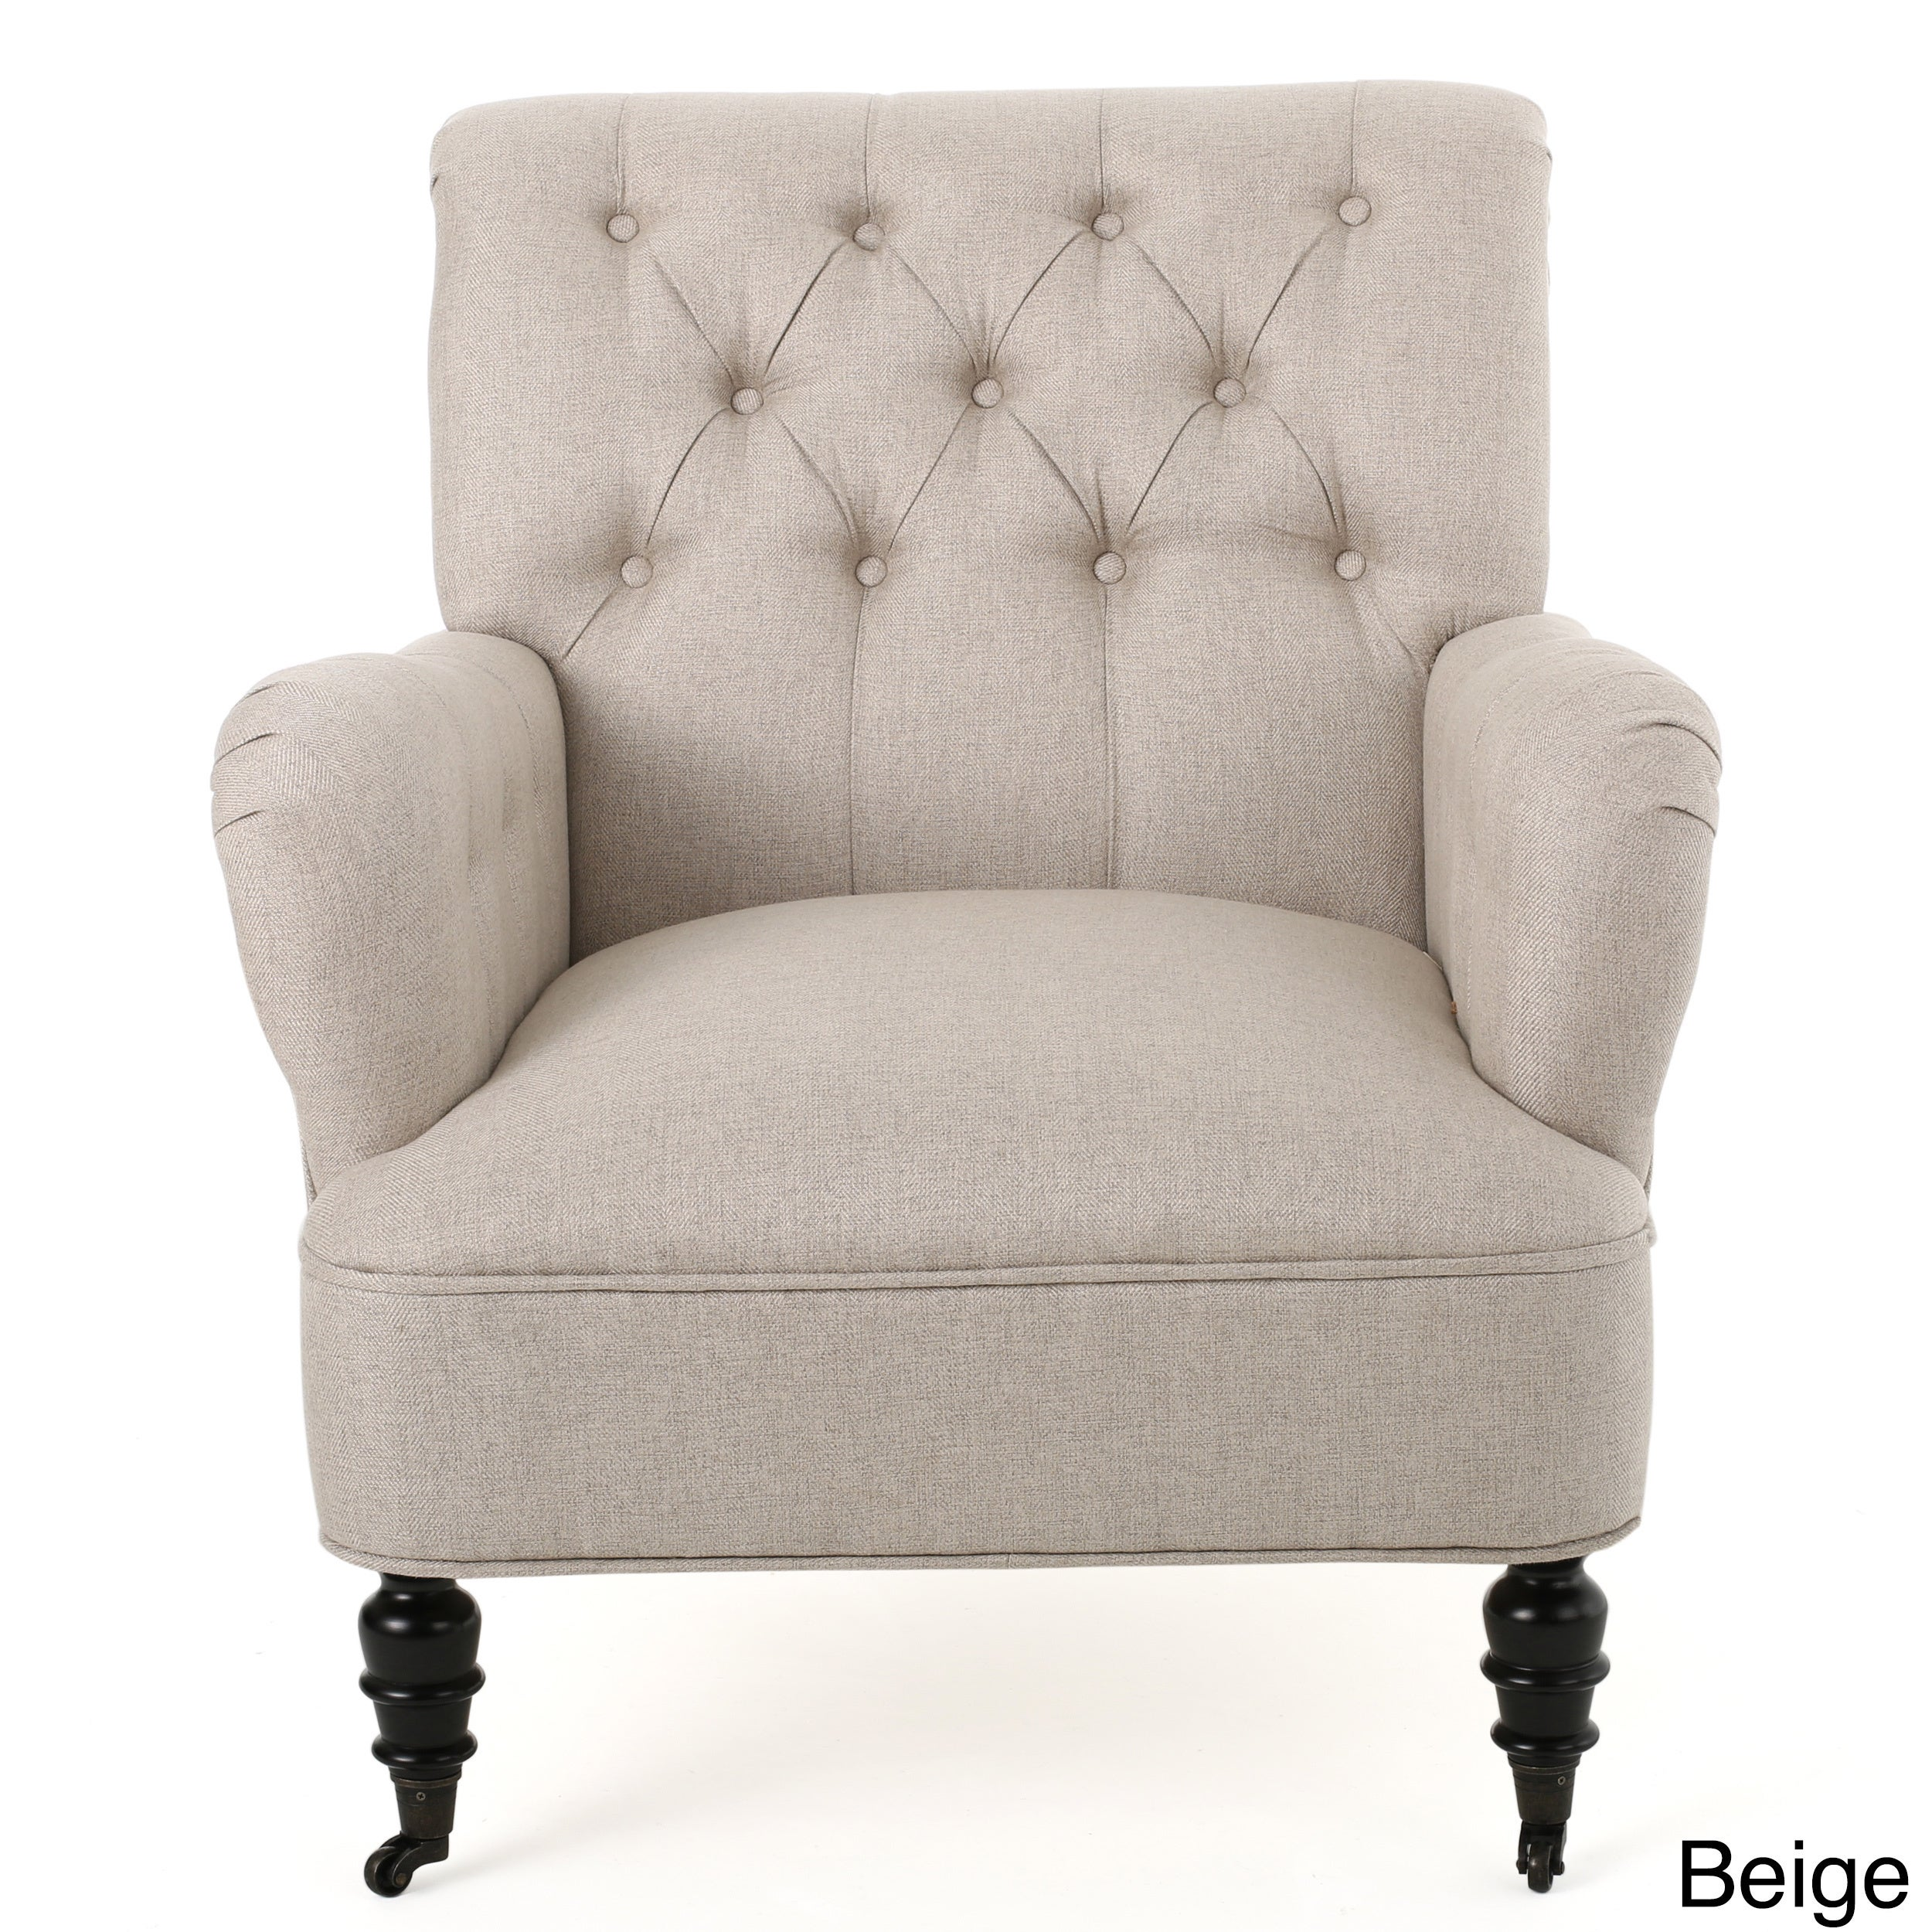 Randle Haven Tufted Studded Fabric Club Chair By